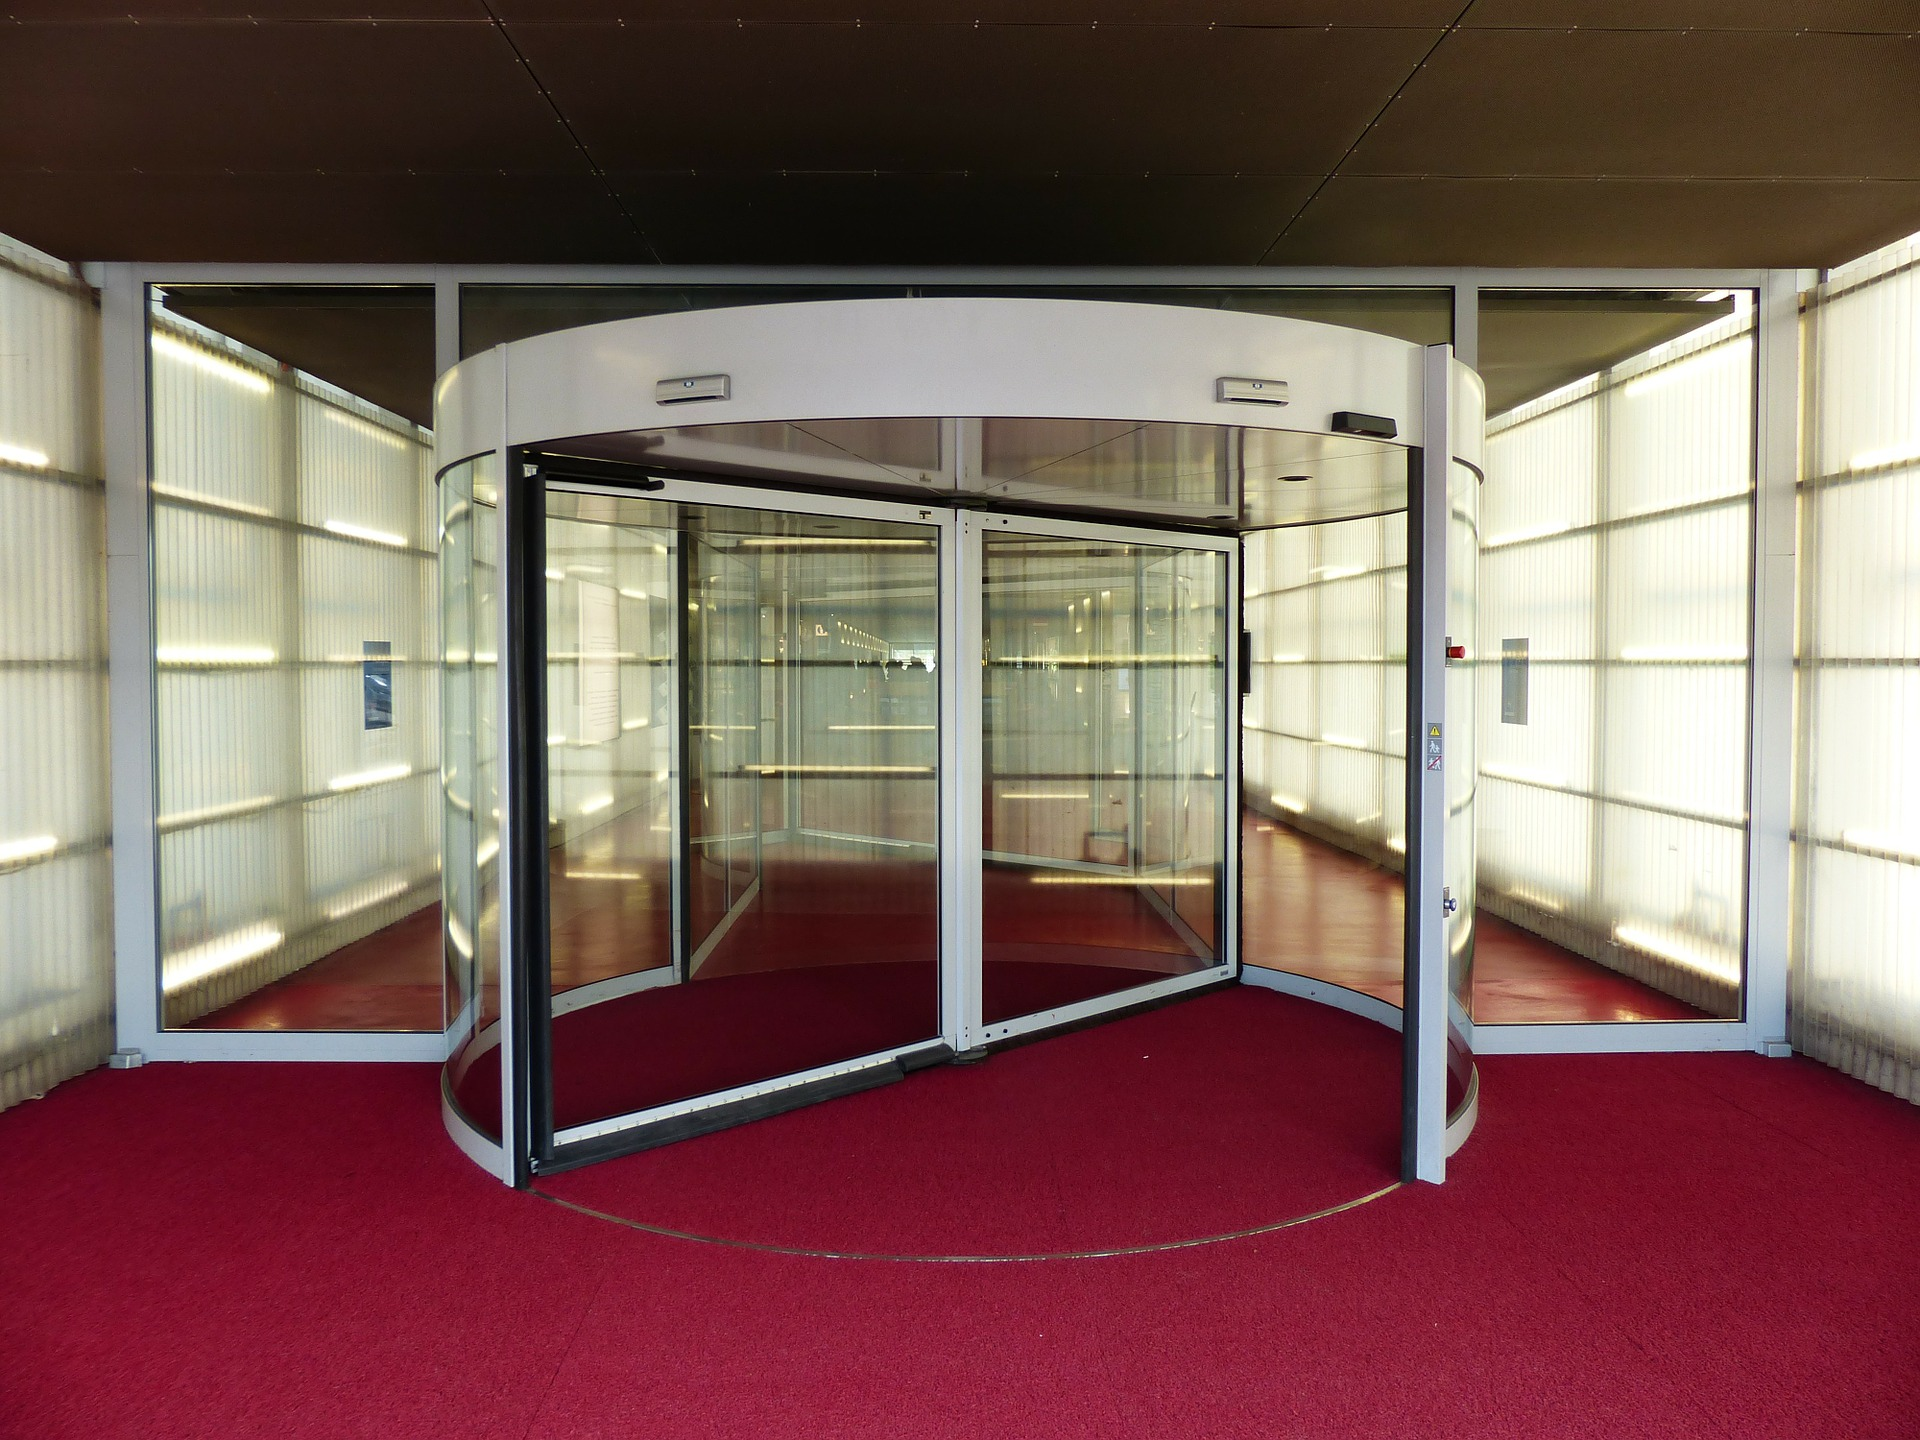 Choose High Gate Doors' Commercial Glass Door Repair for Your Needs